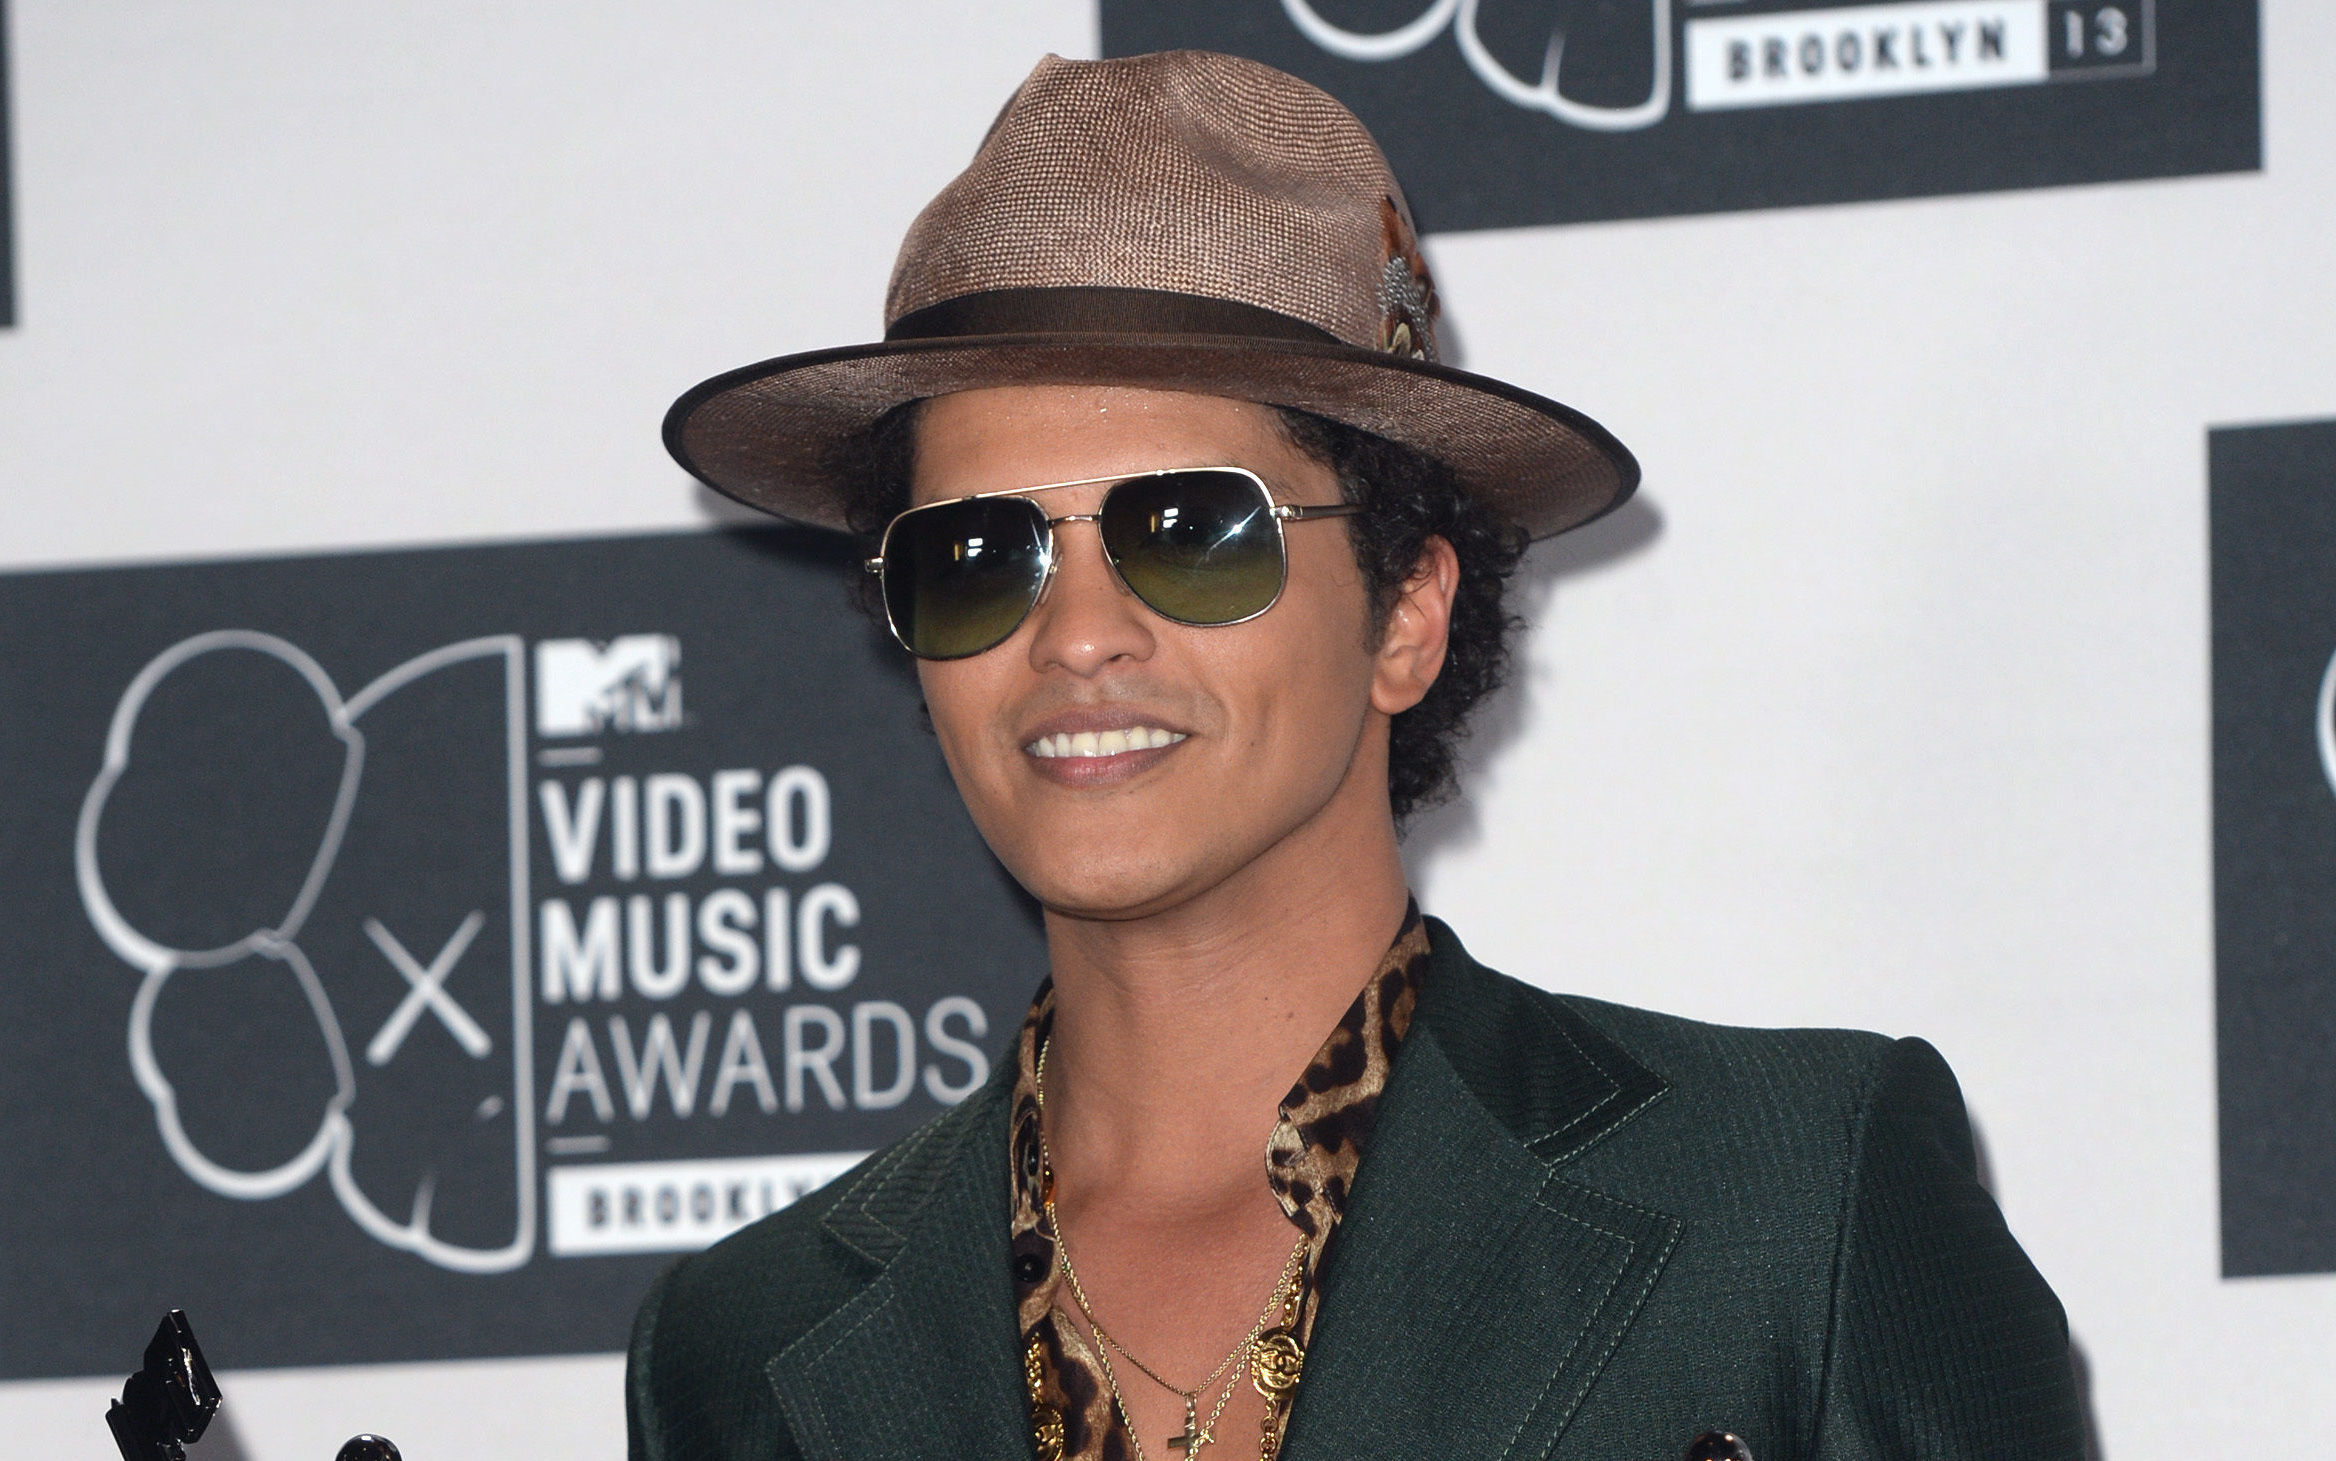 Bruno Mars was forced to leave the stage following a fire scare during a concert in Glasgow (Doug Peters/PA Wire)